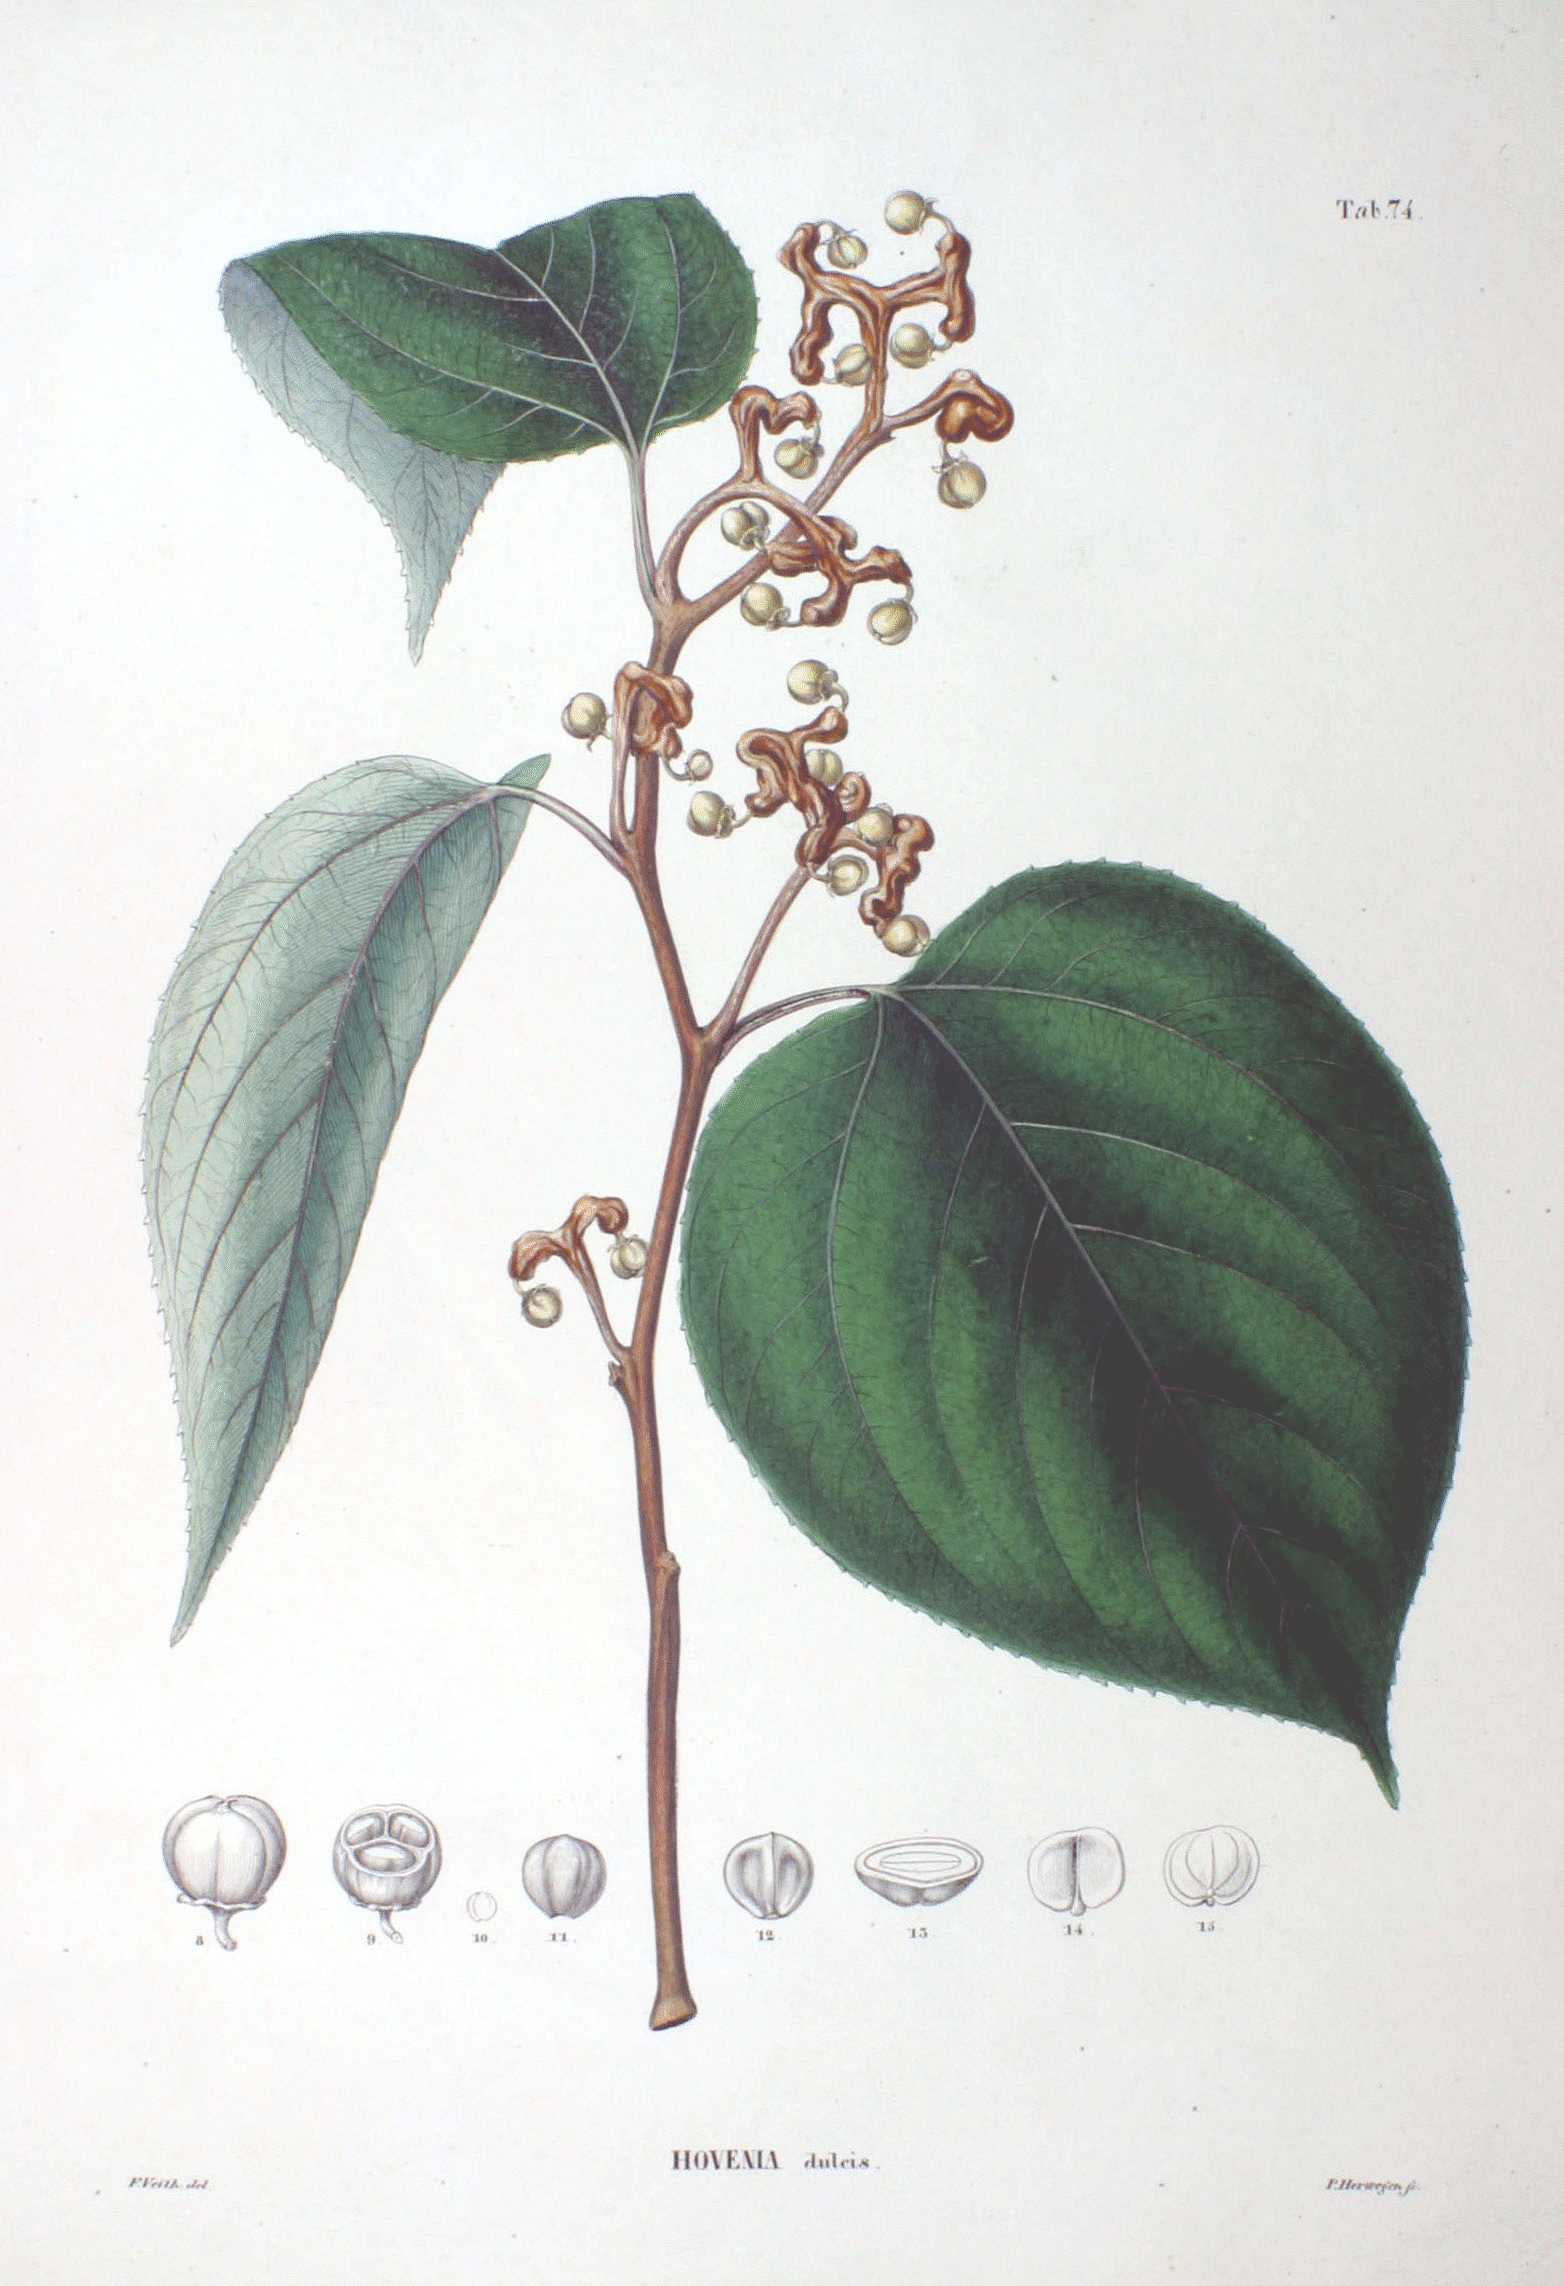 Hovenia Dulcis Leaves and Fruit Illustration